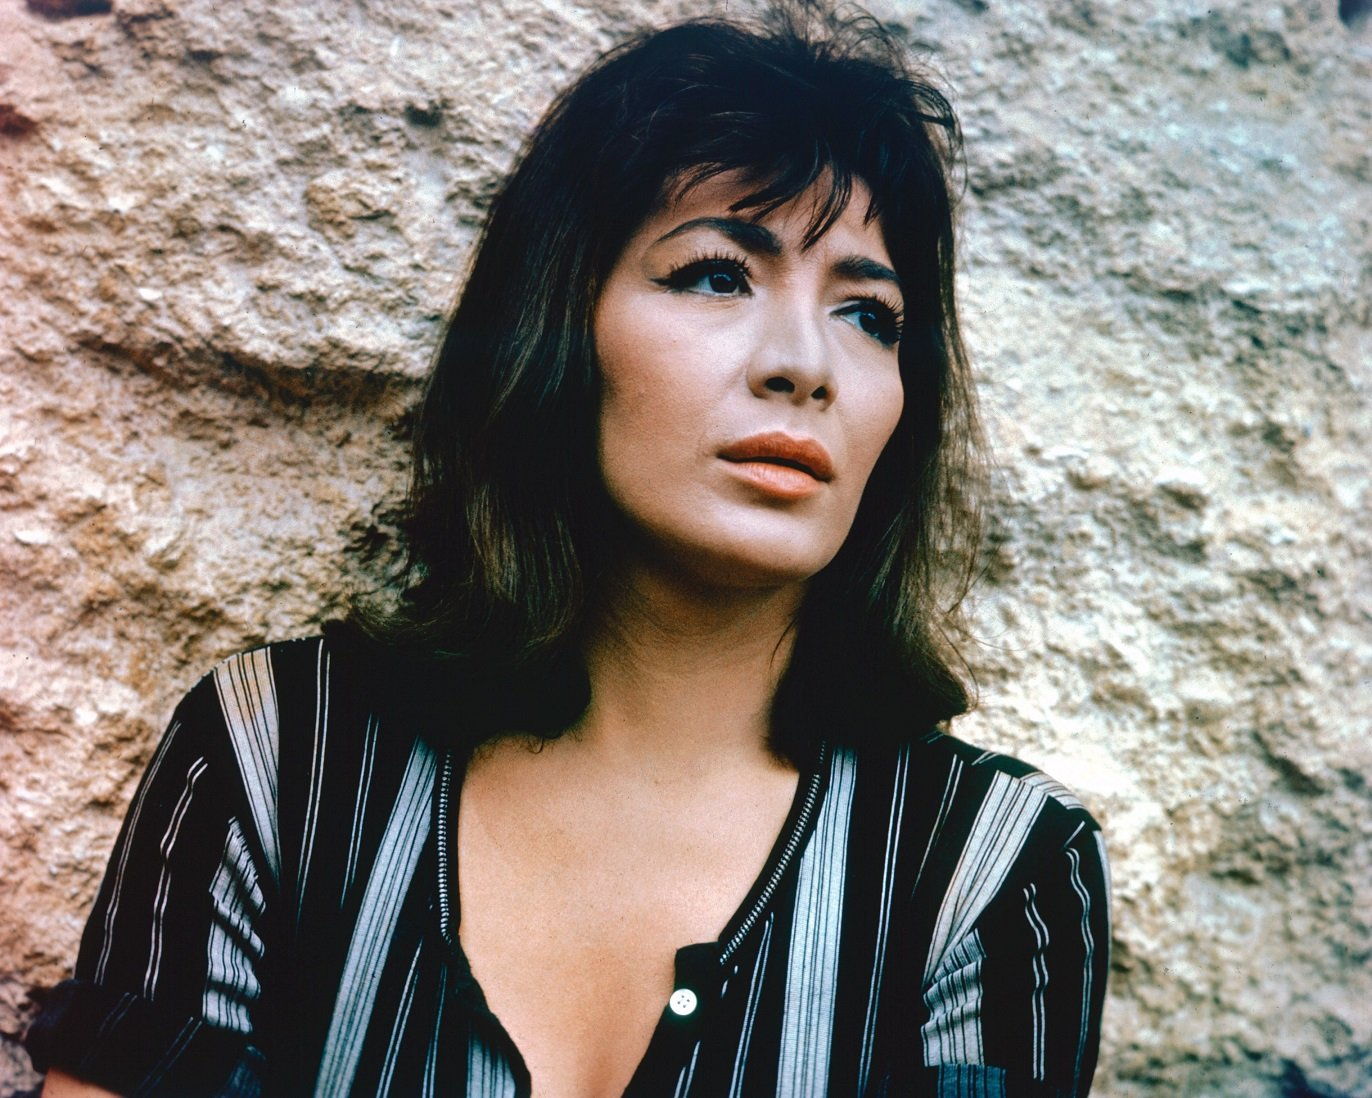 La chanteuse Juliette Gréco | Photo : Getty Images